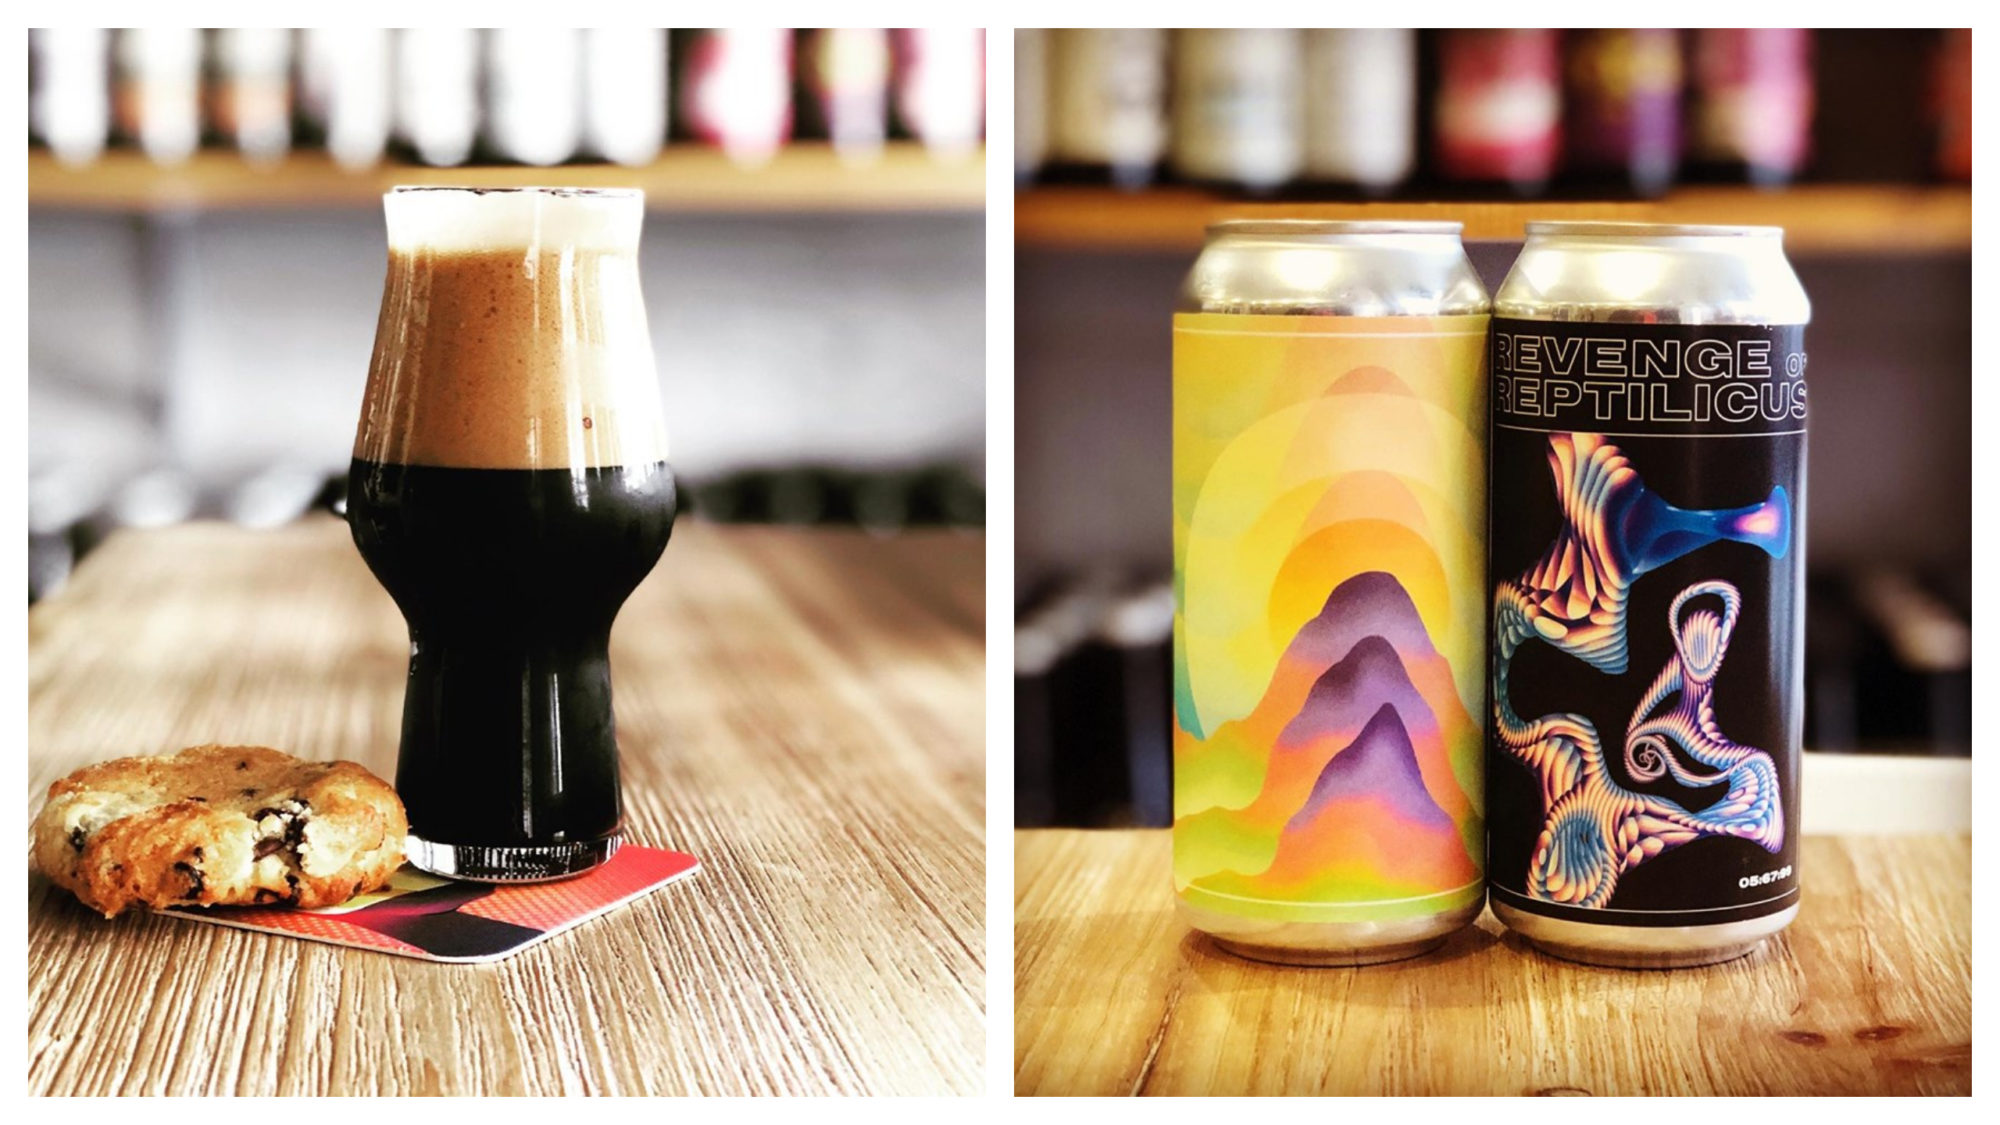 A glass of lager beer with a cookie on a wooden counter (left). Two cans of craft beer with psychedelic designs (right).